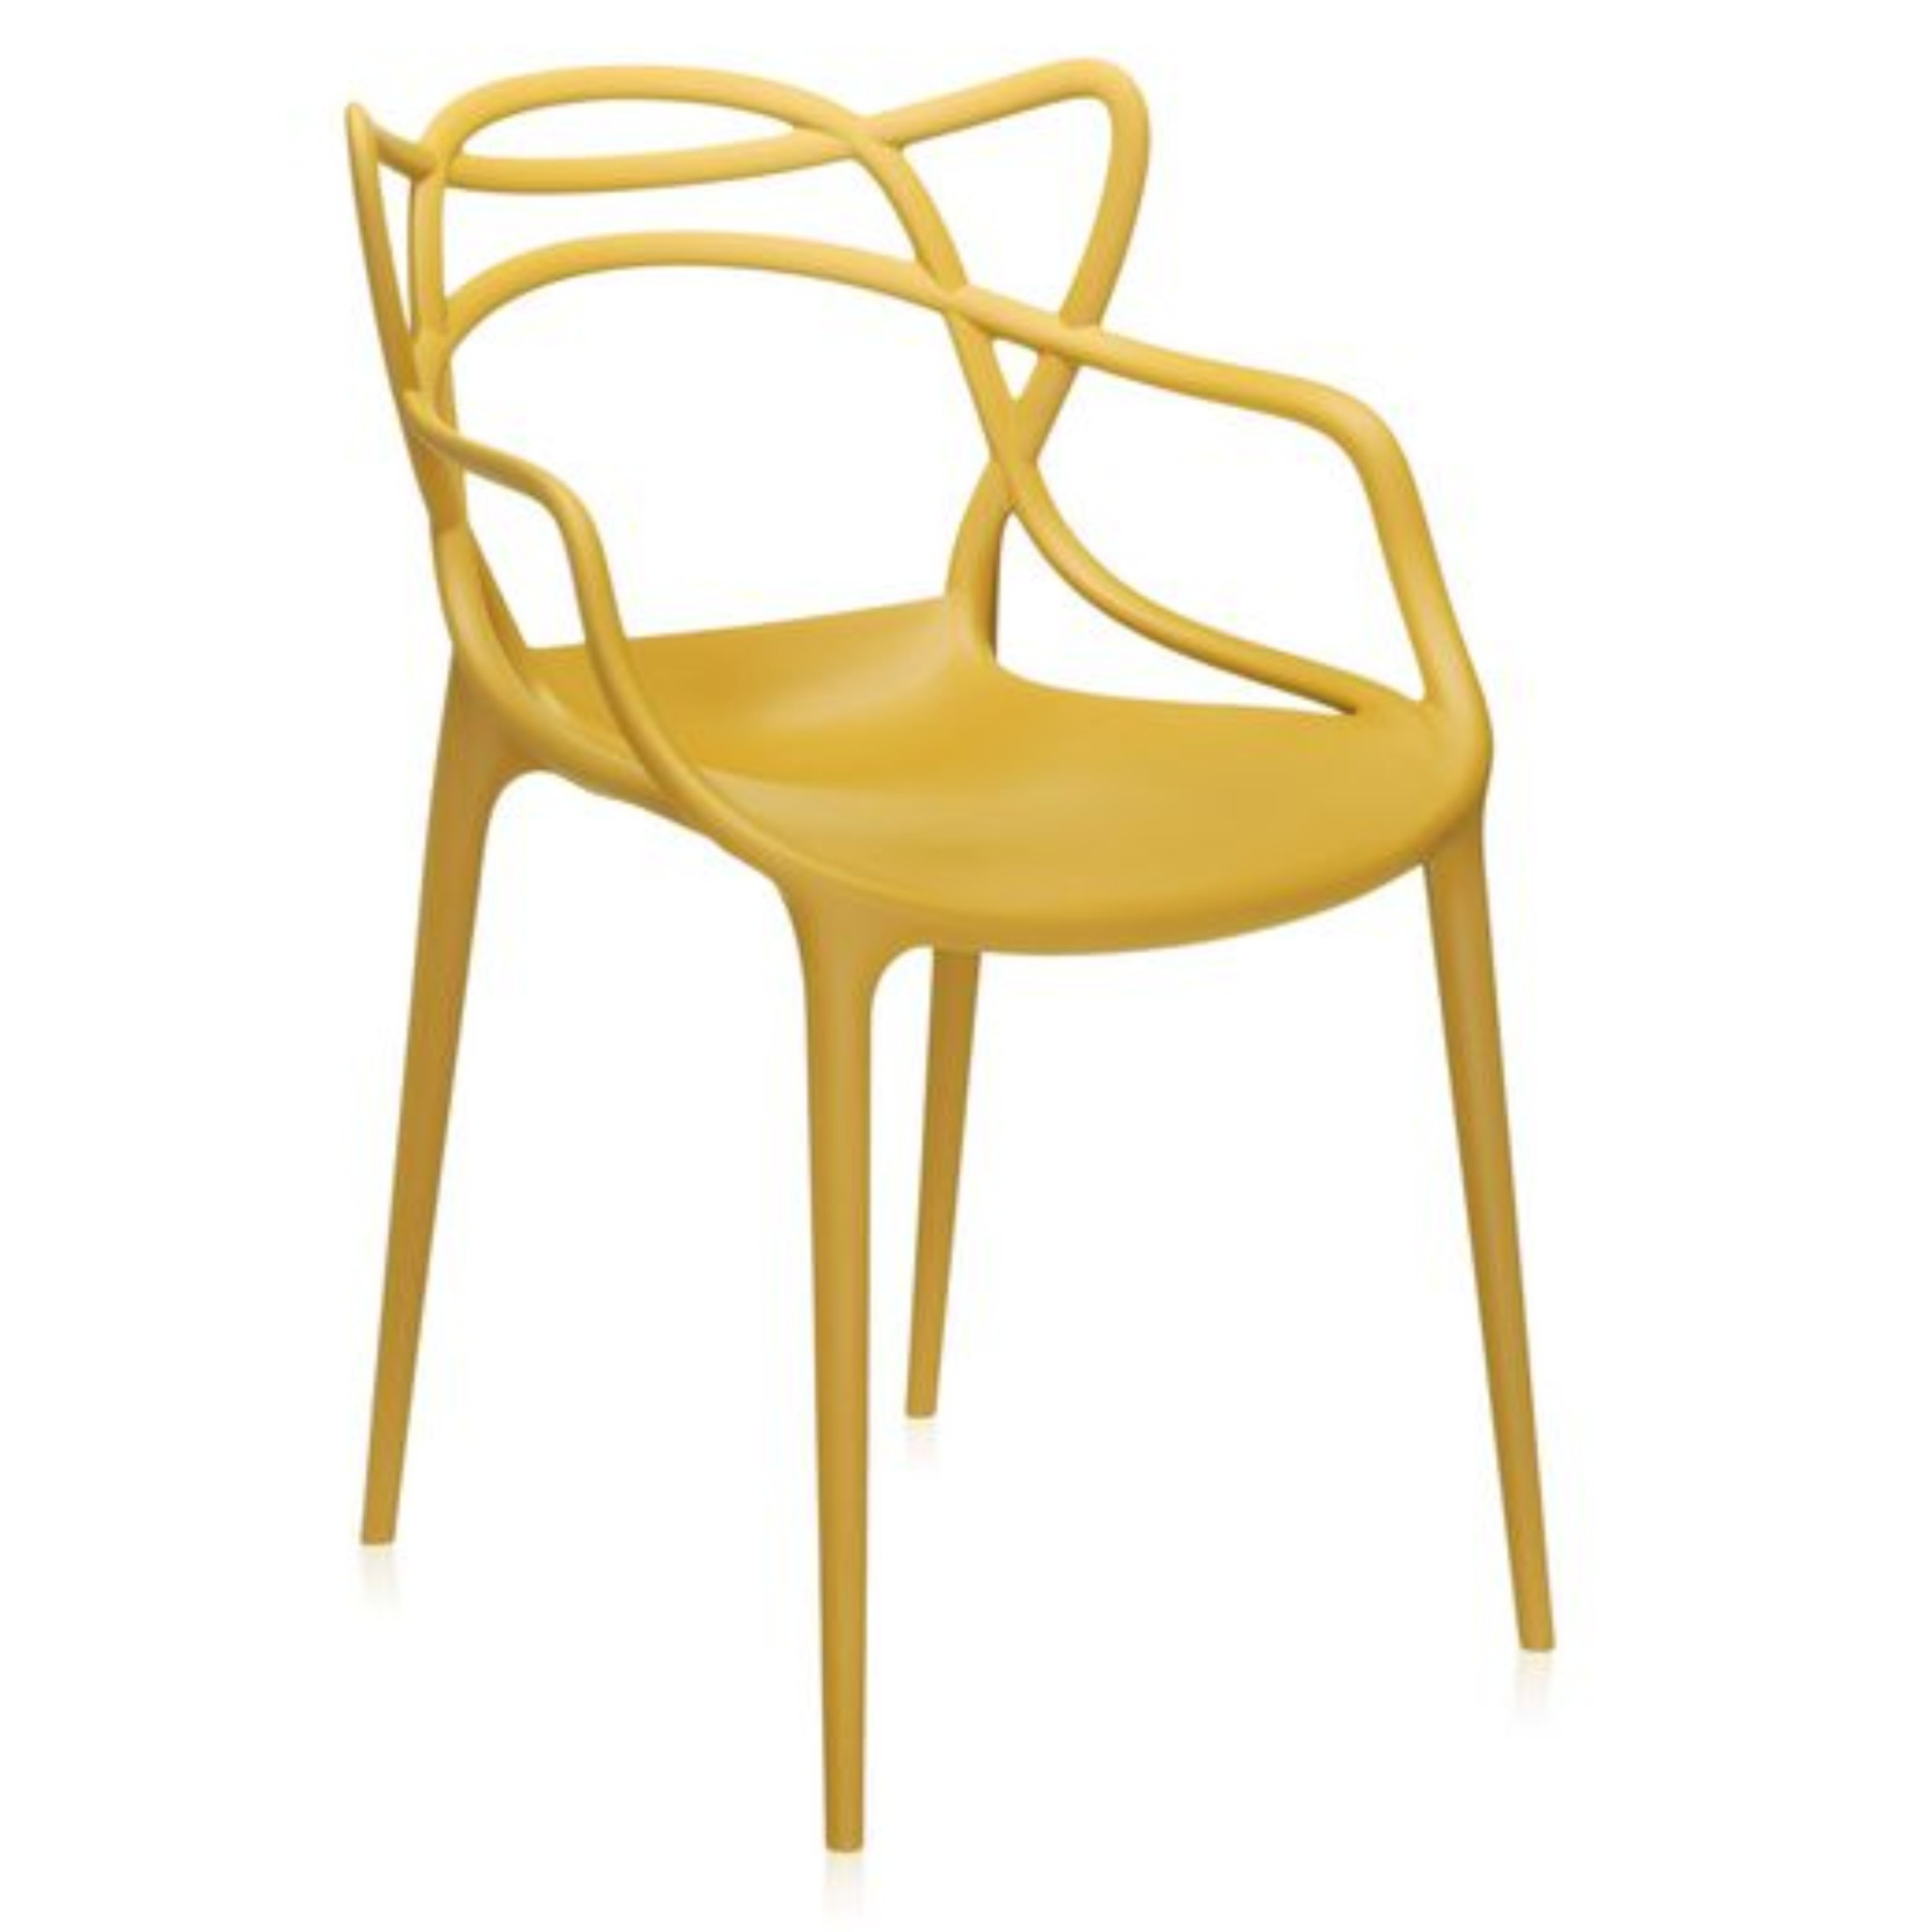 MASTERS, by KARTELL